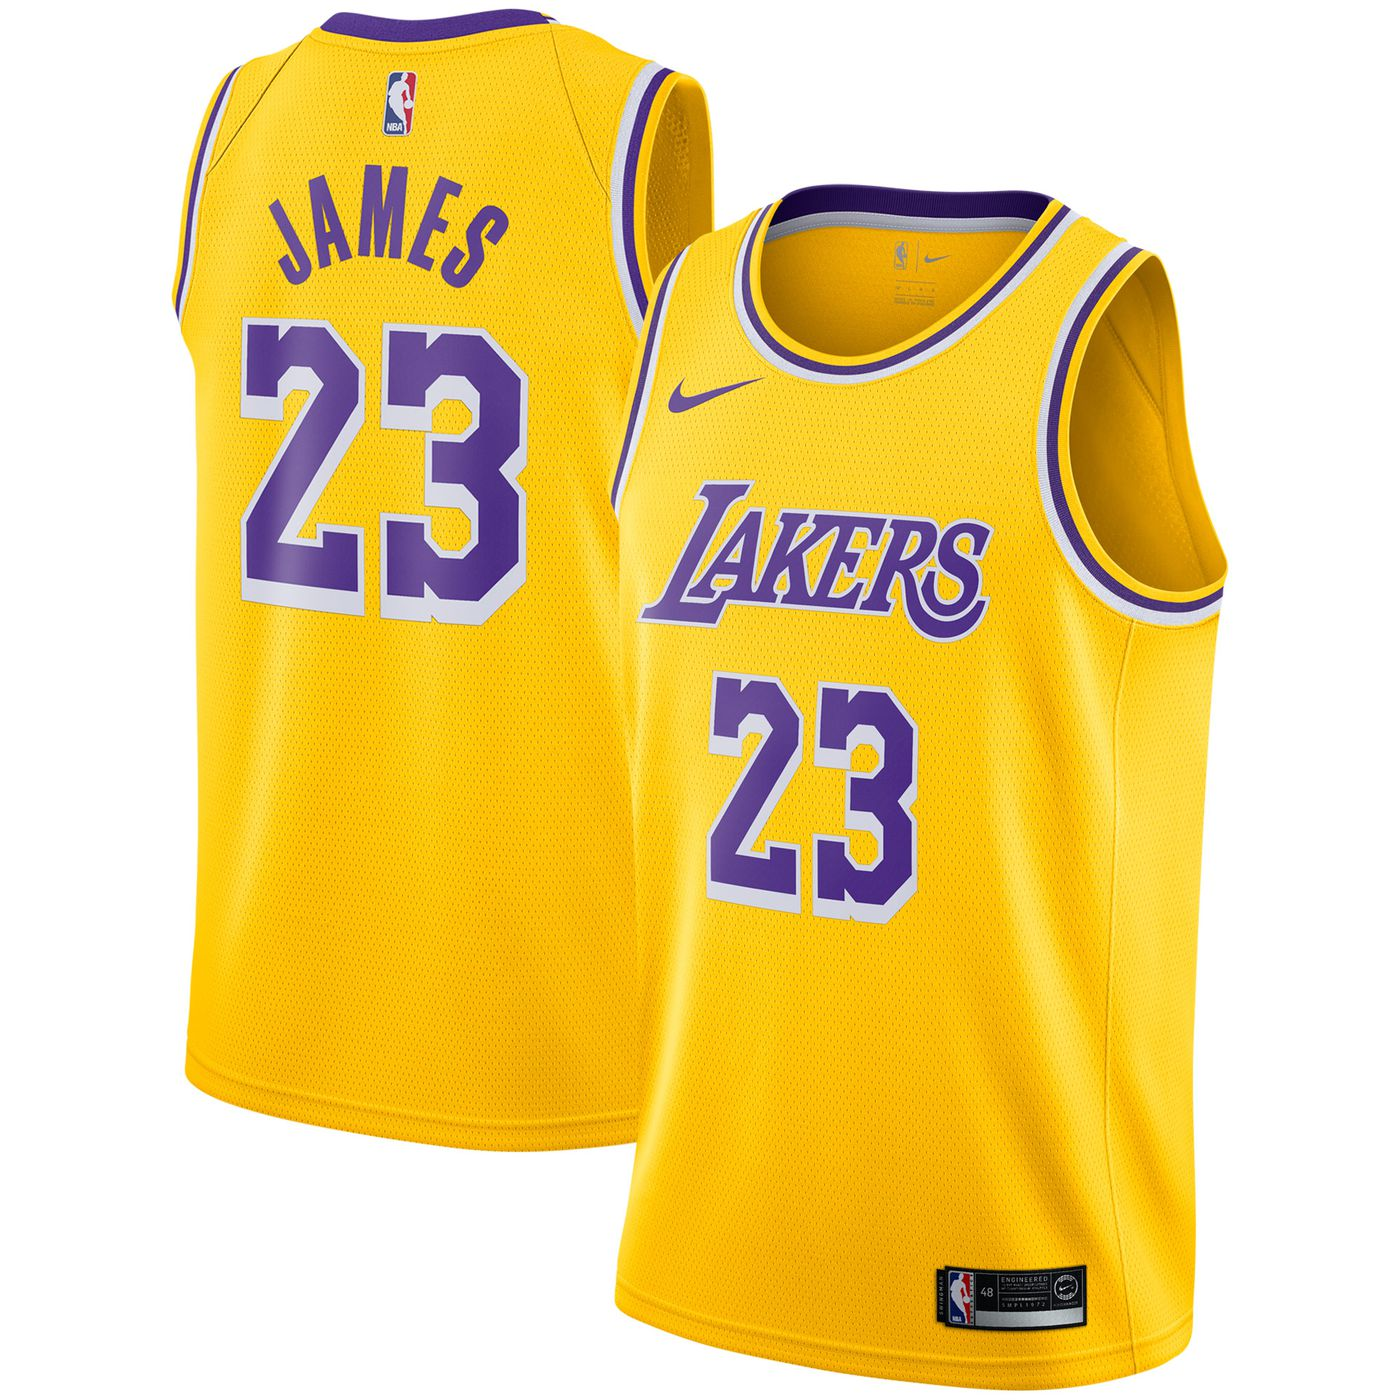 fc61eea92e4 Where you can get new Los Angeles Lakers and LeBron James Nike uniforms -  SBNation.com